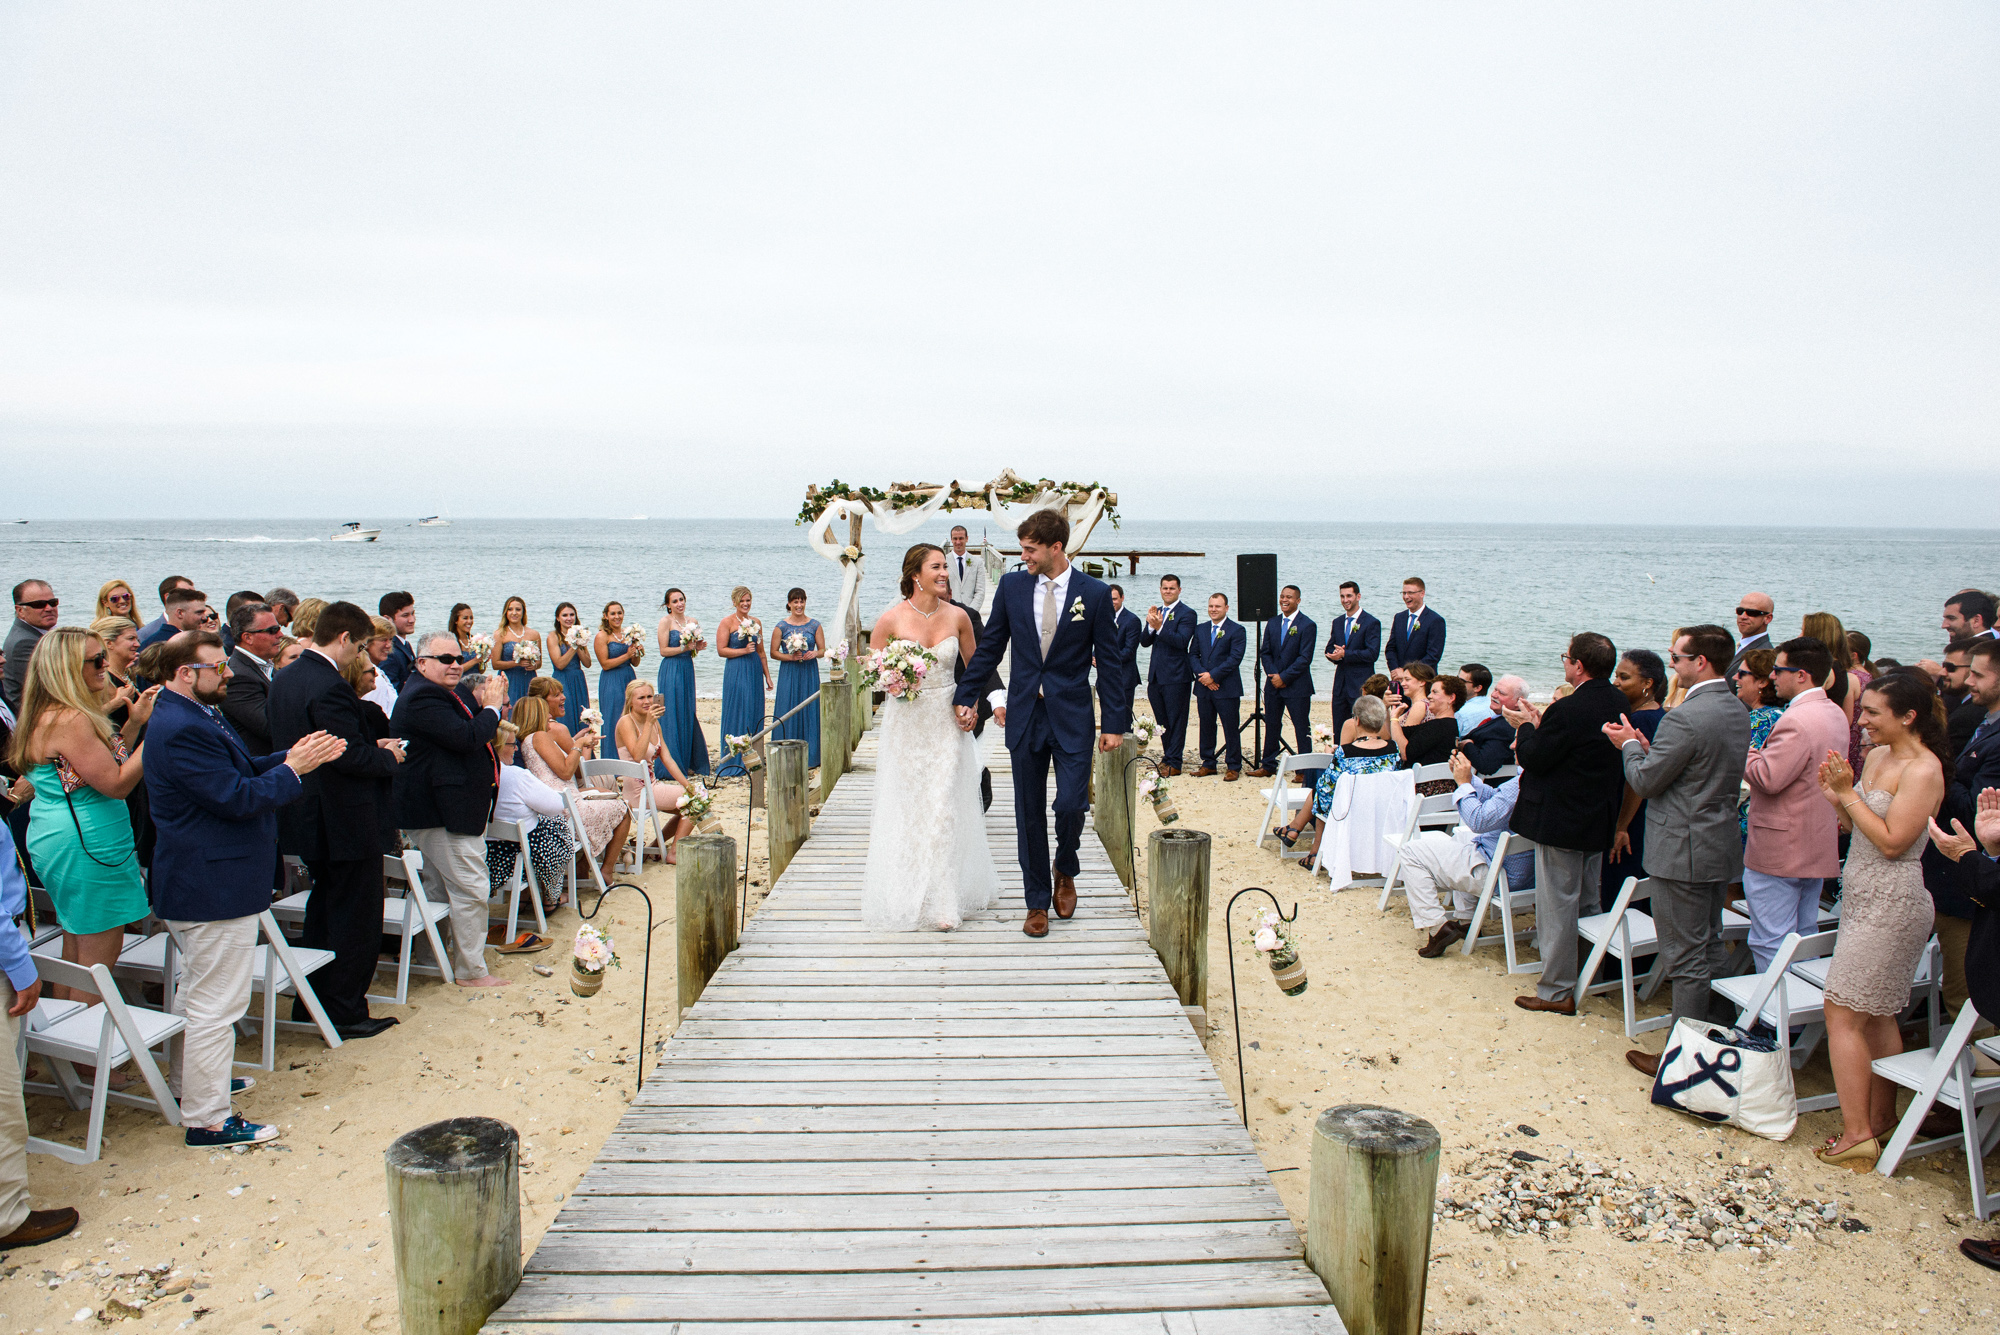 A bride and groom exit their wedding ceremony at the East Chop Beach Club in Oak Bluffs photo by David Welch Photography